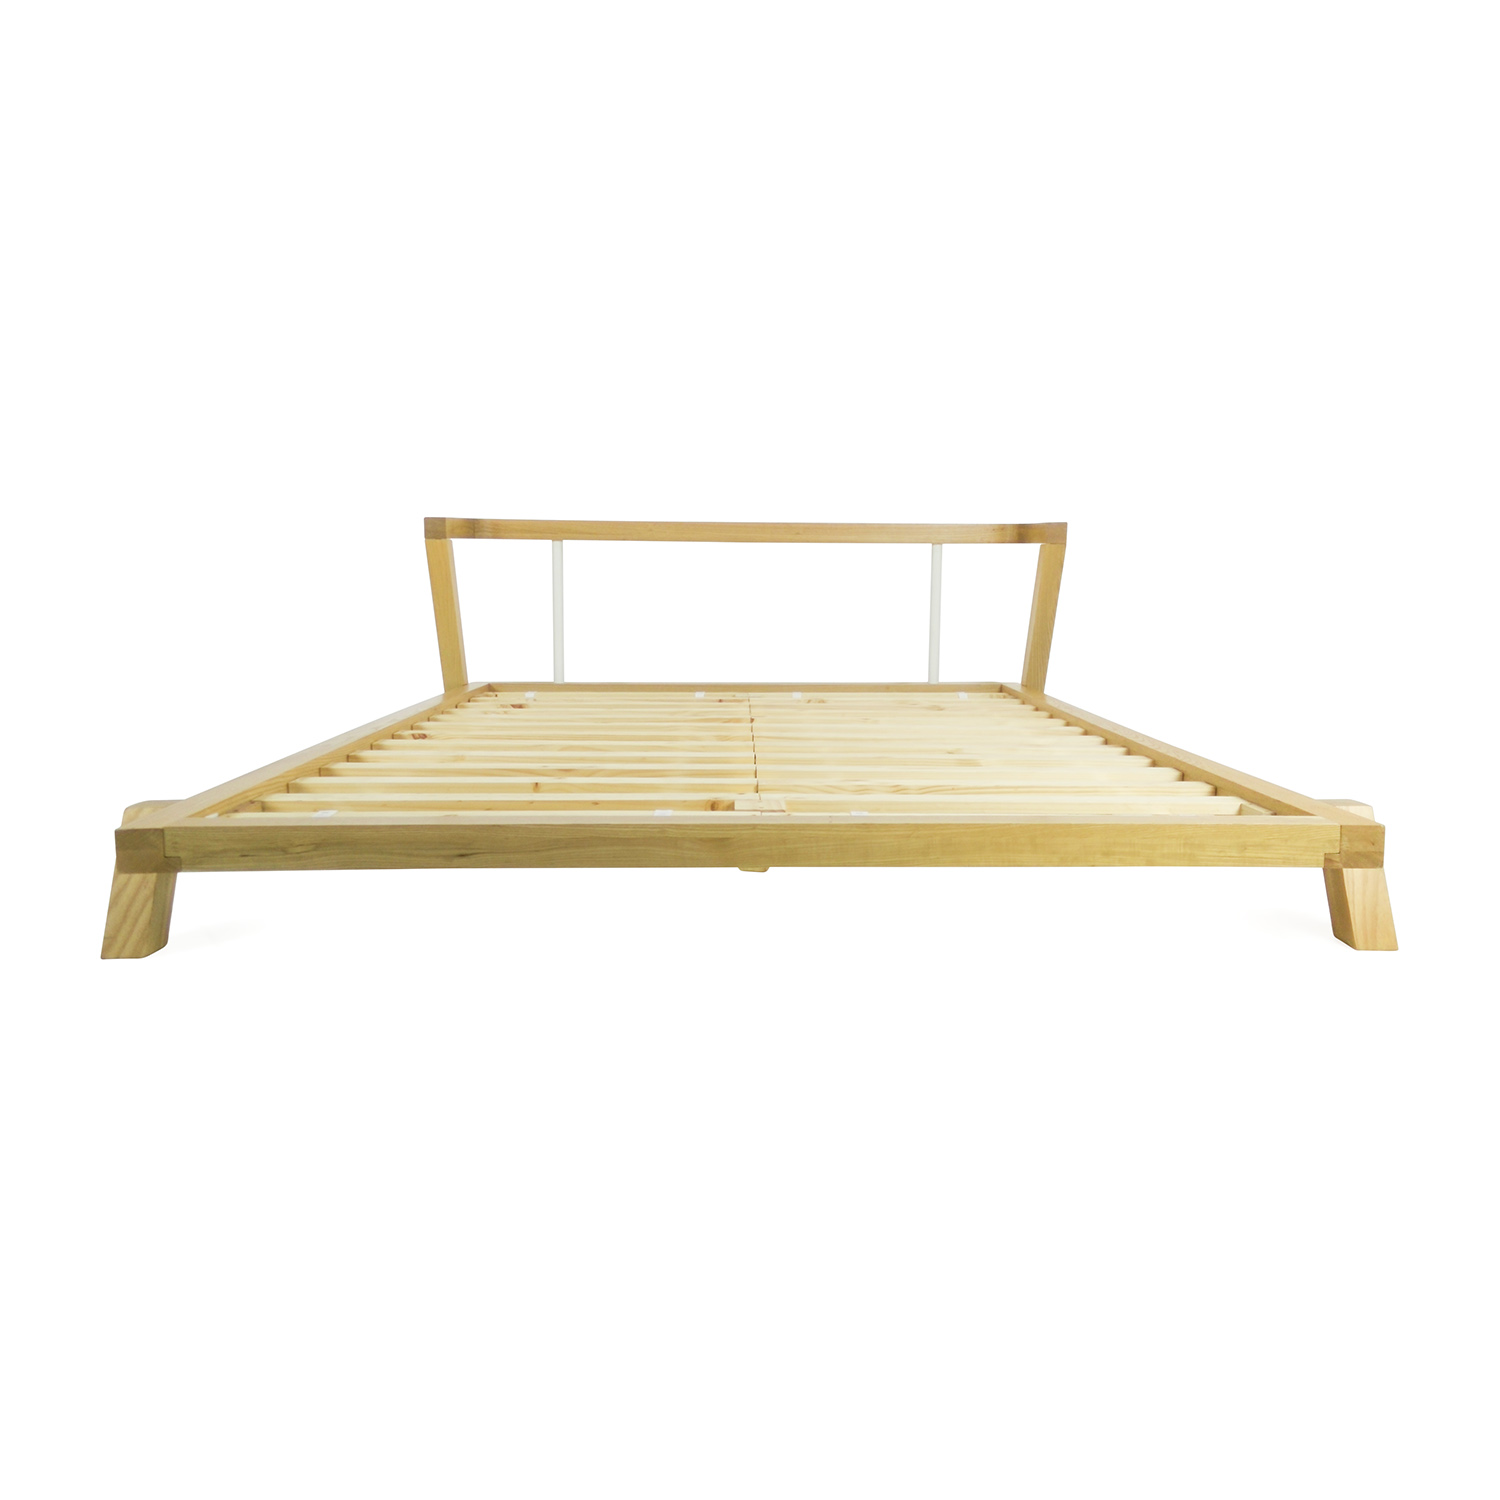 72% OFF - CB2 CB2 Siesta Queen Size Bed / Beds